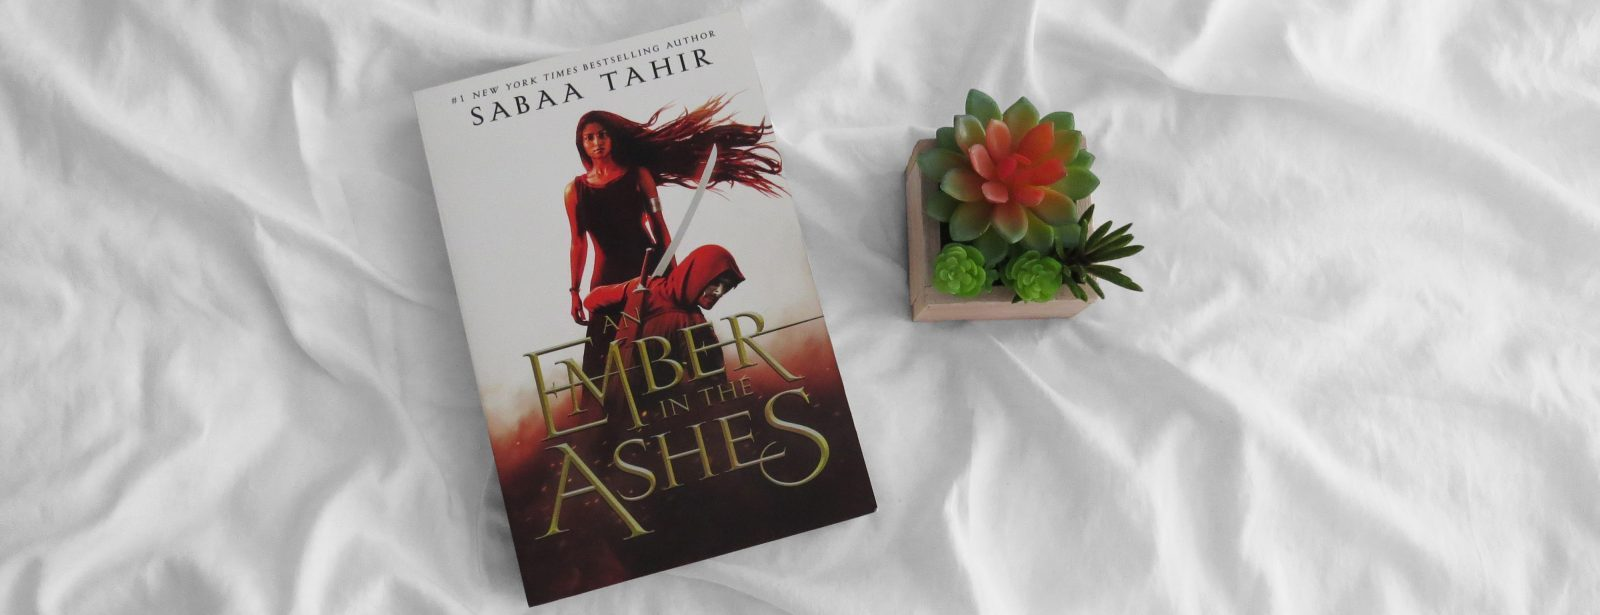 Review | An Ember in the Ashes by Sabaa Tahir